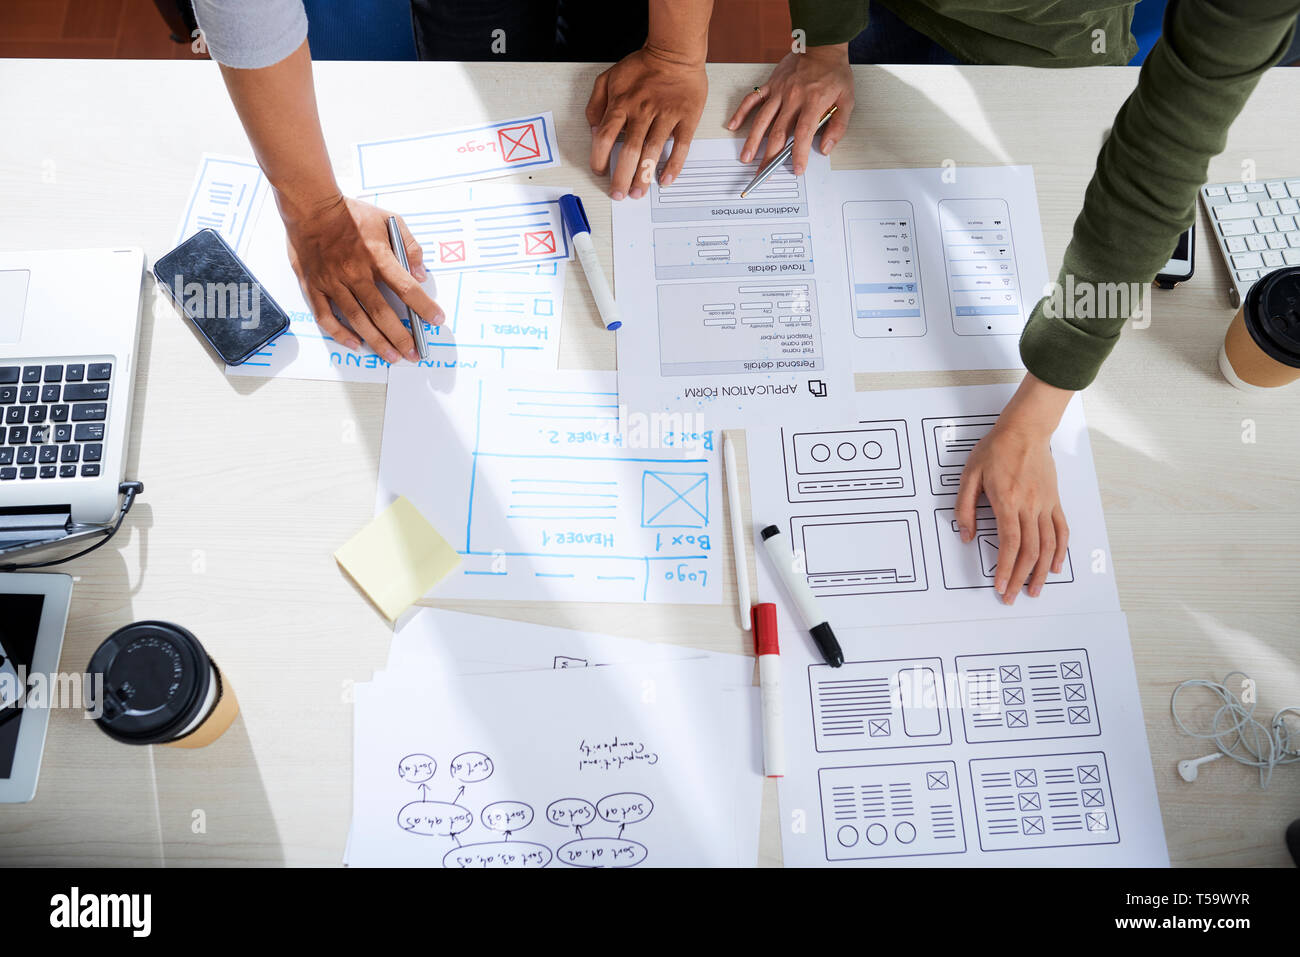 Brainstorming about ux design - Stock Image